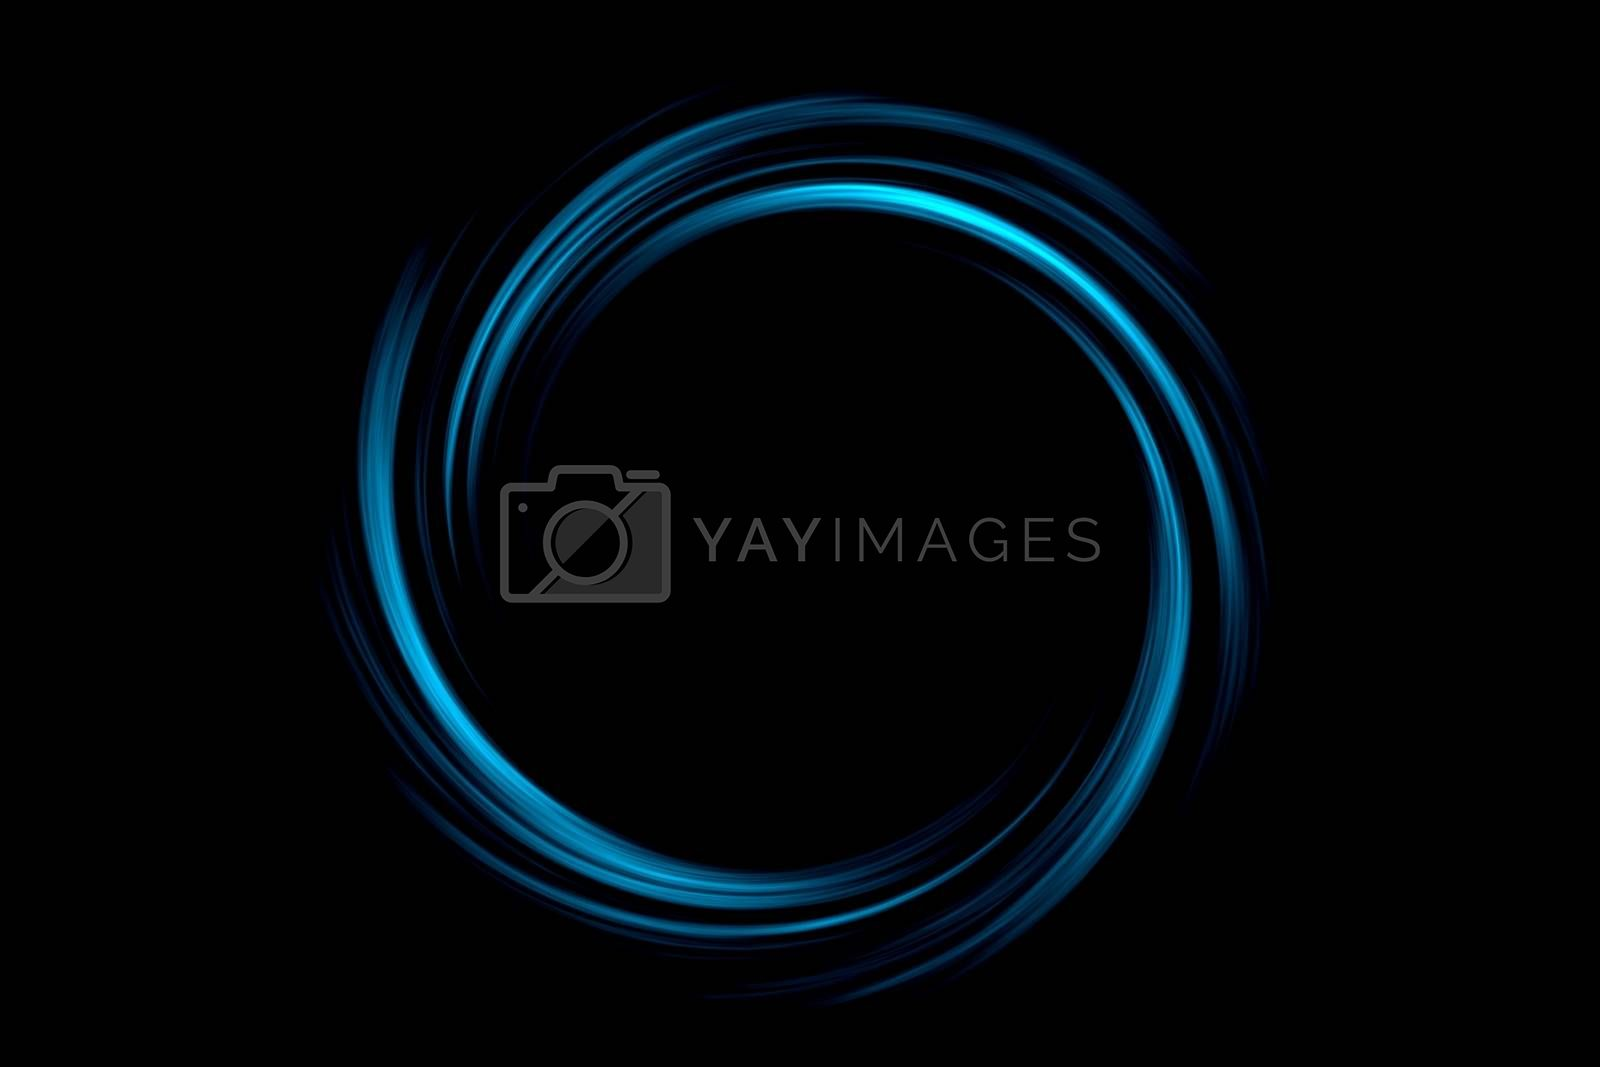 Royalty free image of Abstract black hole with light blue circle on black background by mouu007